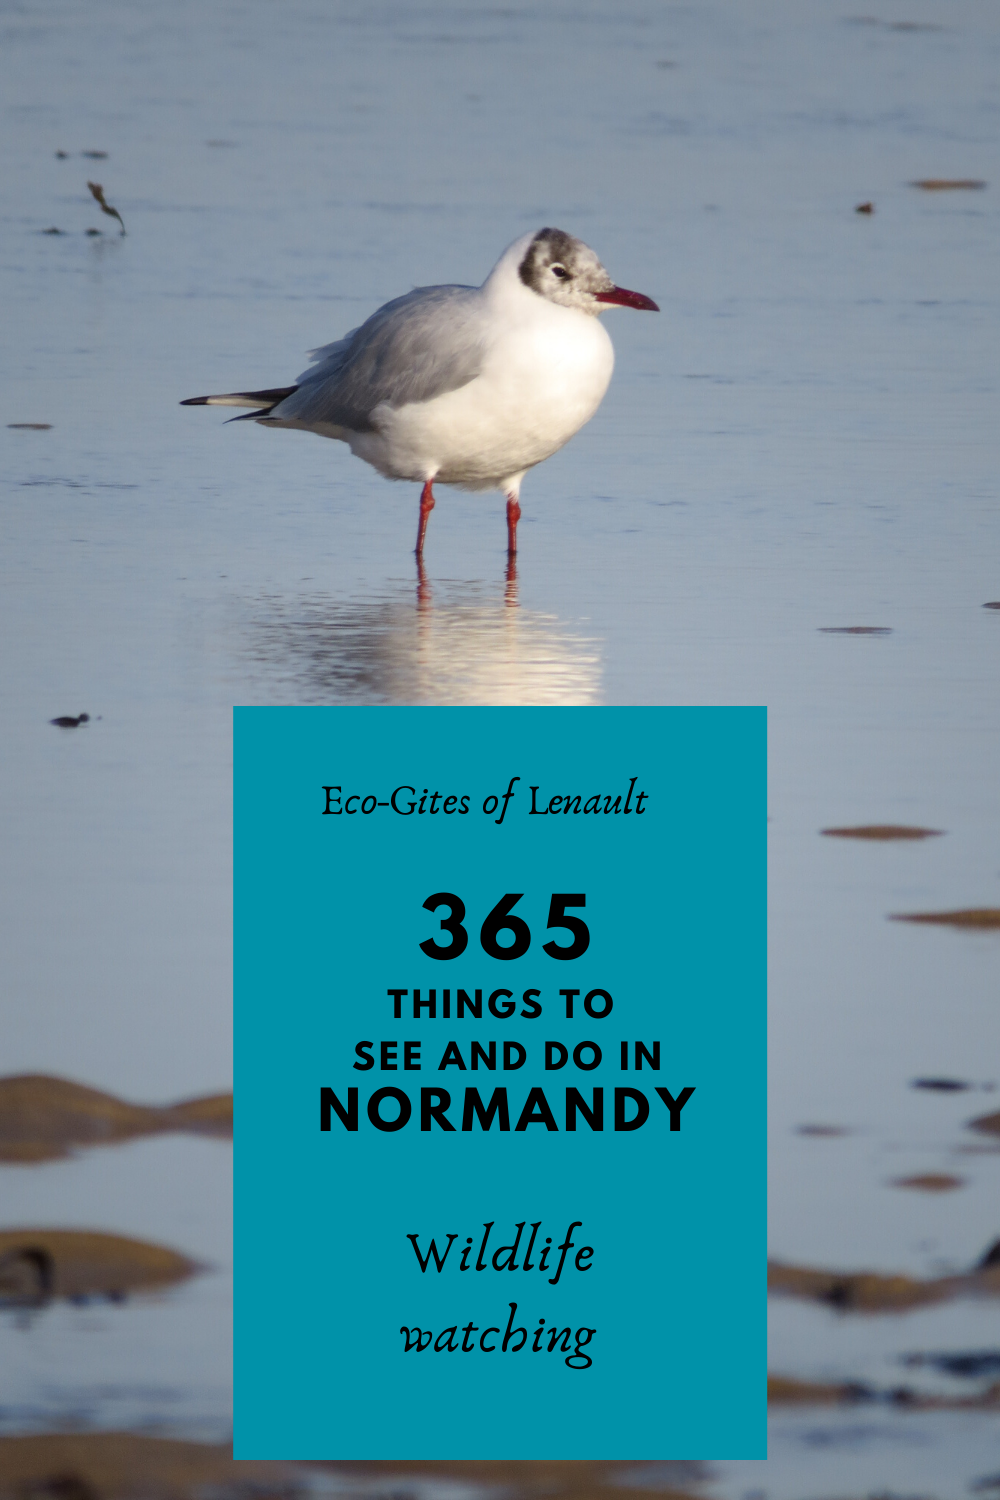 Where to see wildlife in Normandy